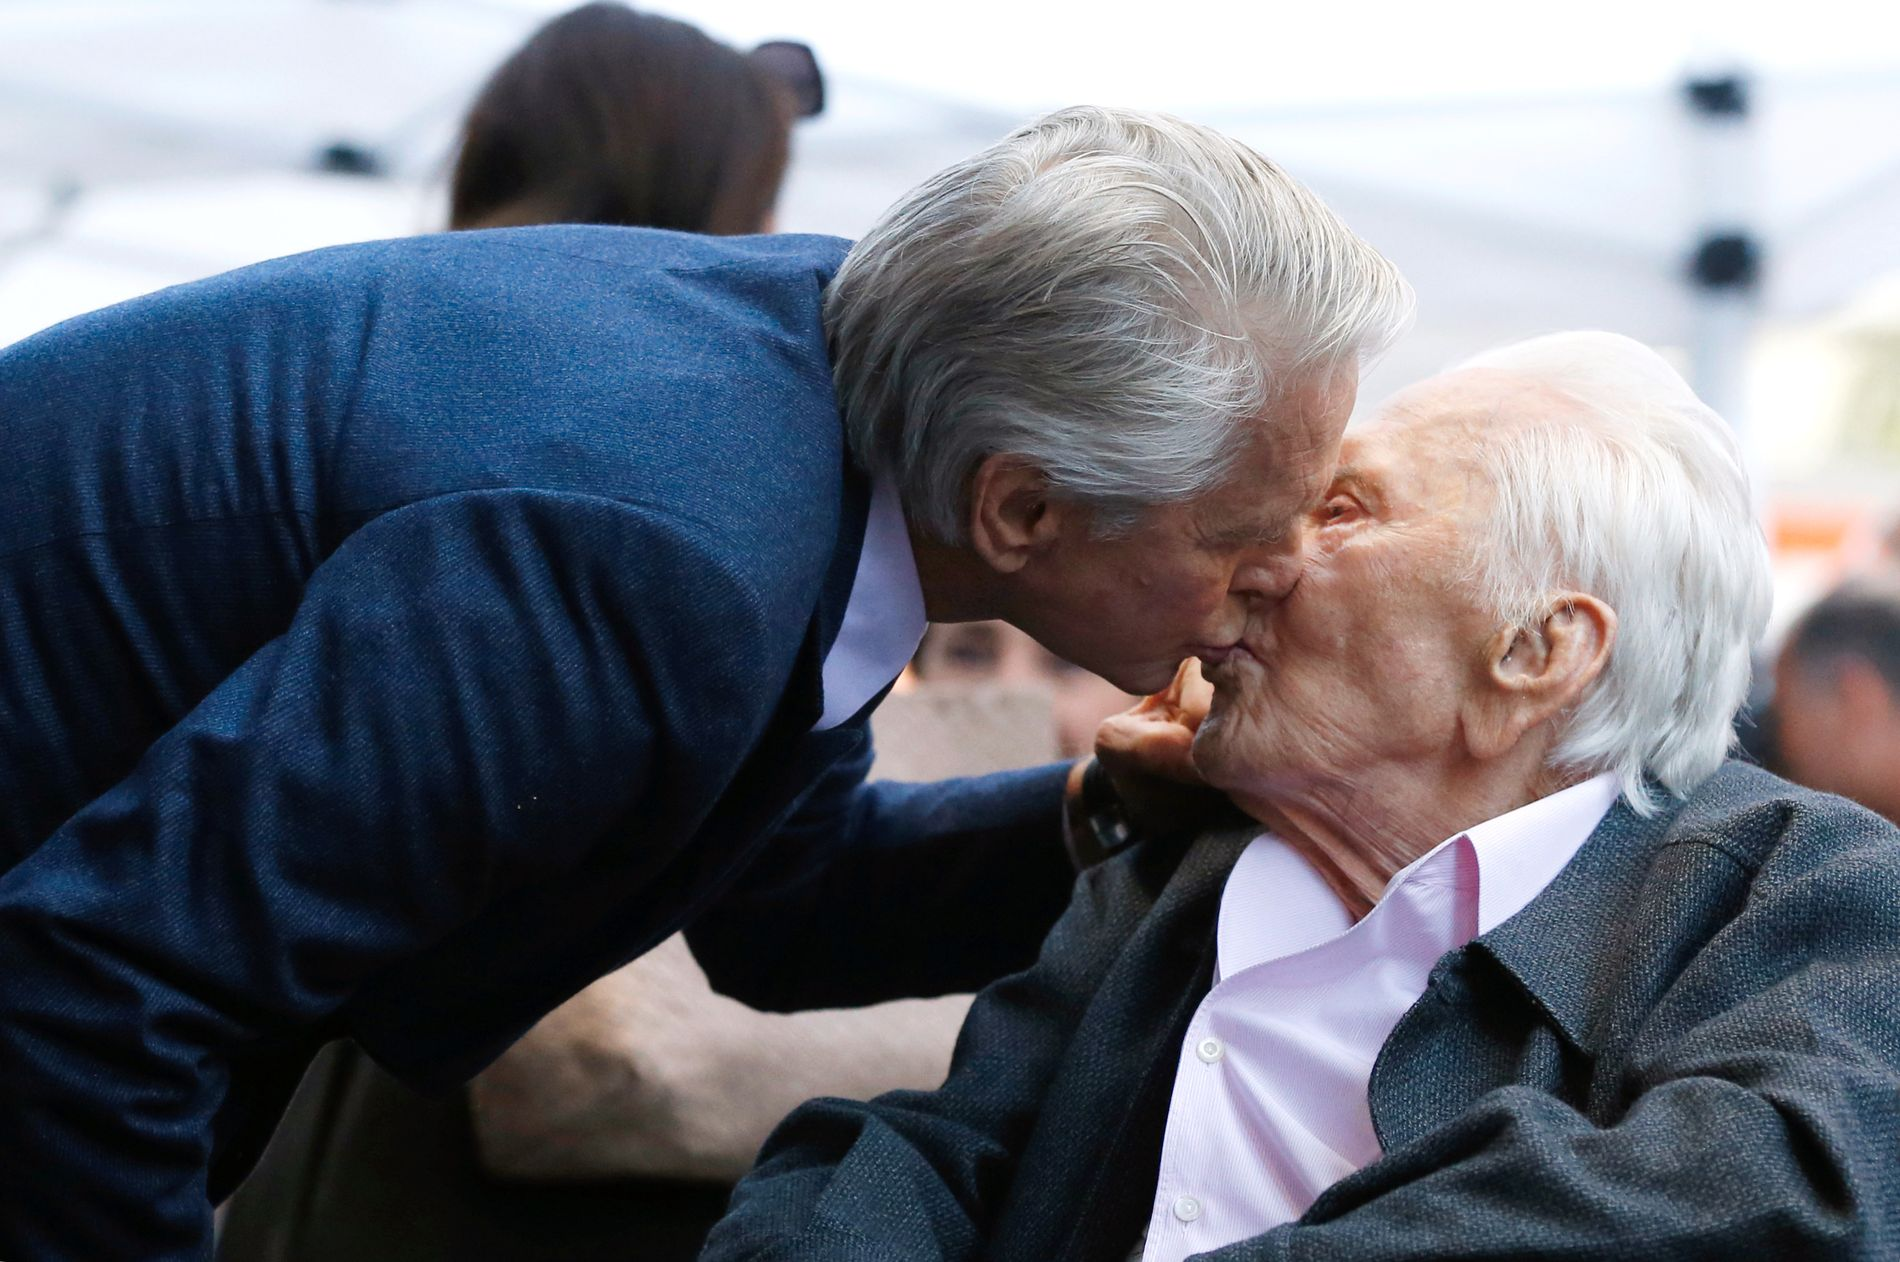 LOVE: Michael Douglas has shown to everyone present how close his father is, Kirk Douglas, at a ceremony on Monday.